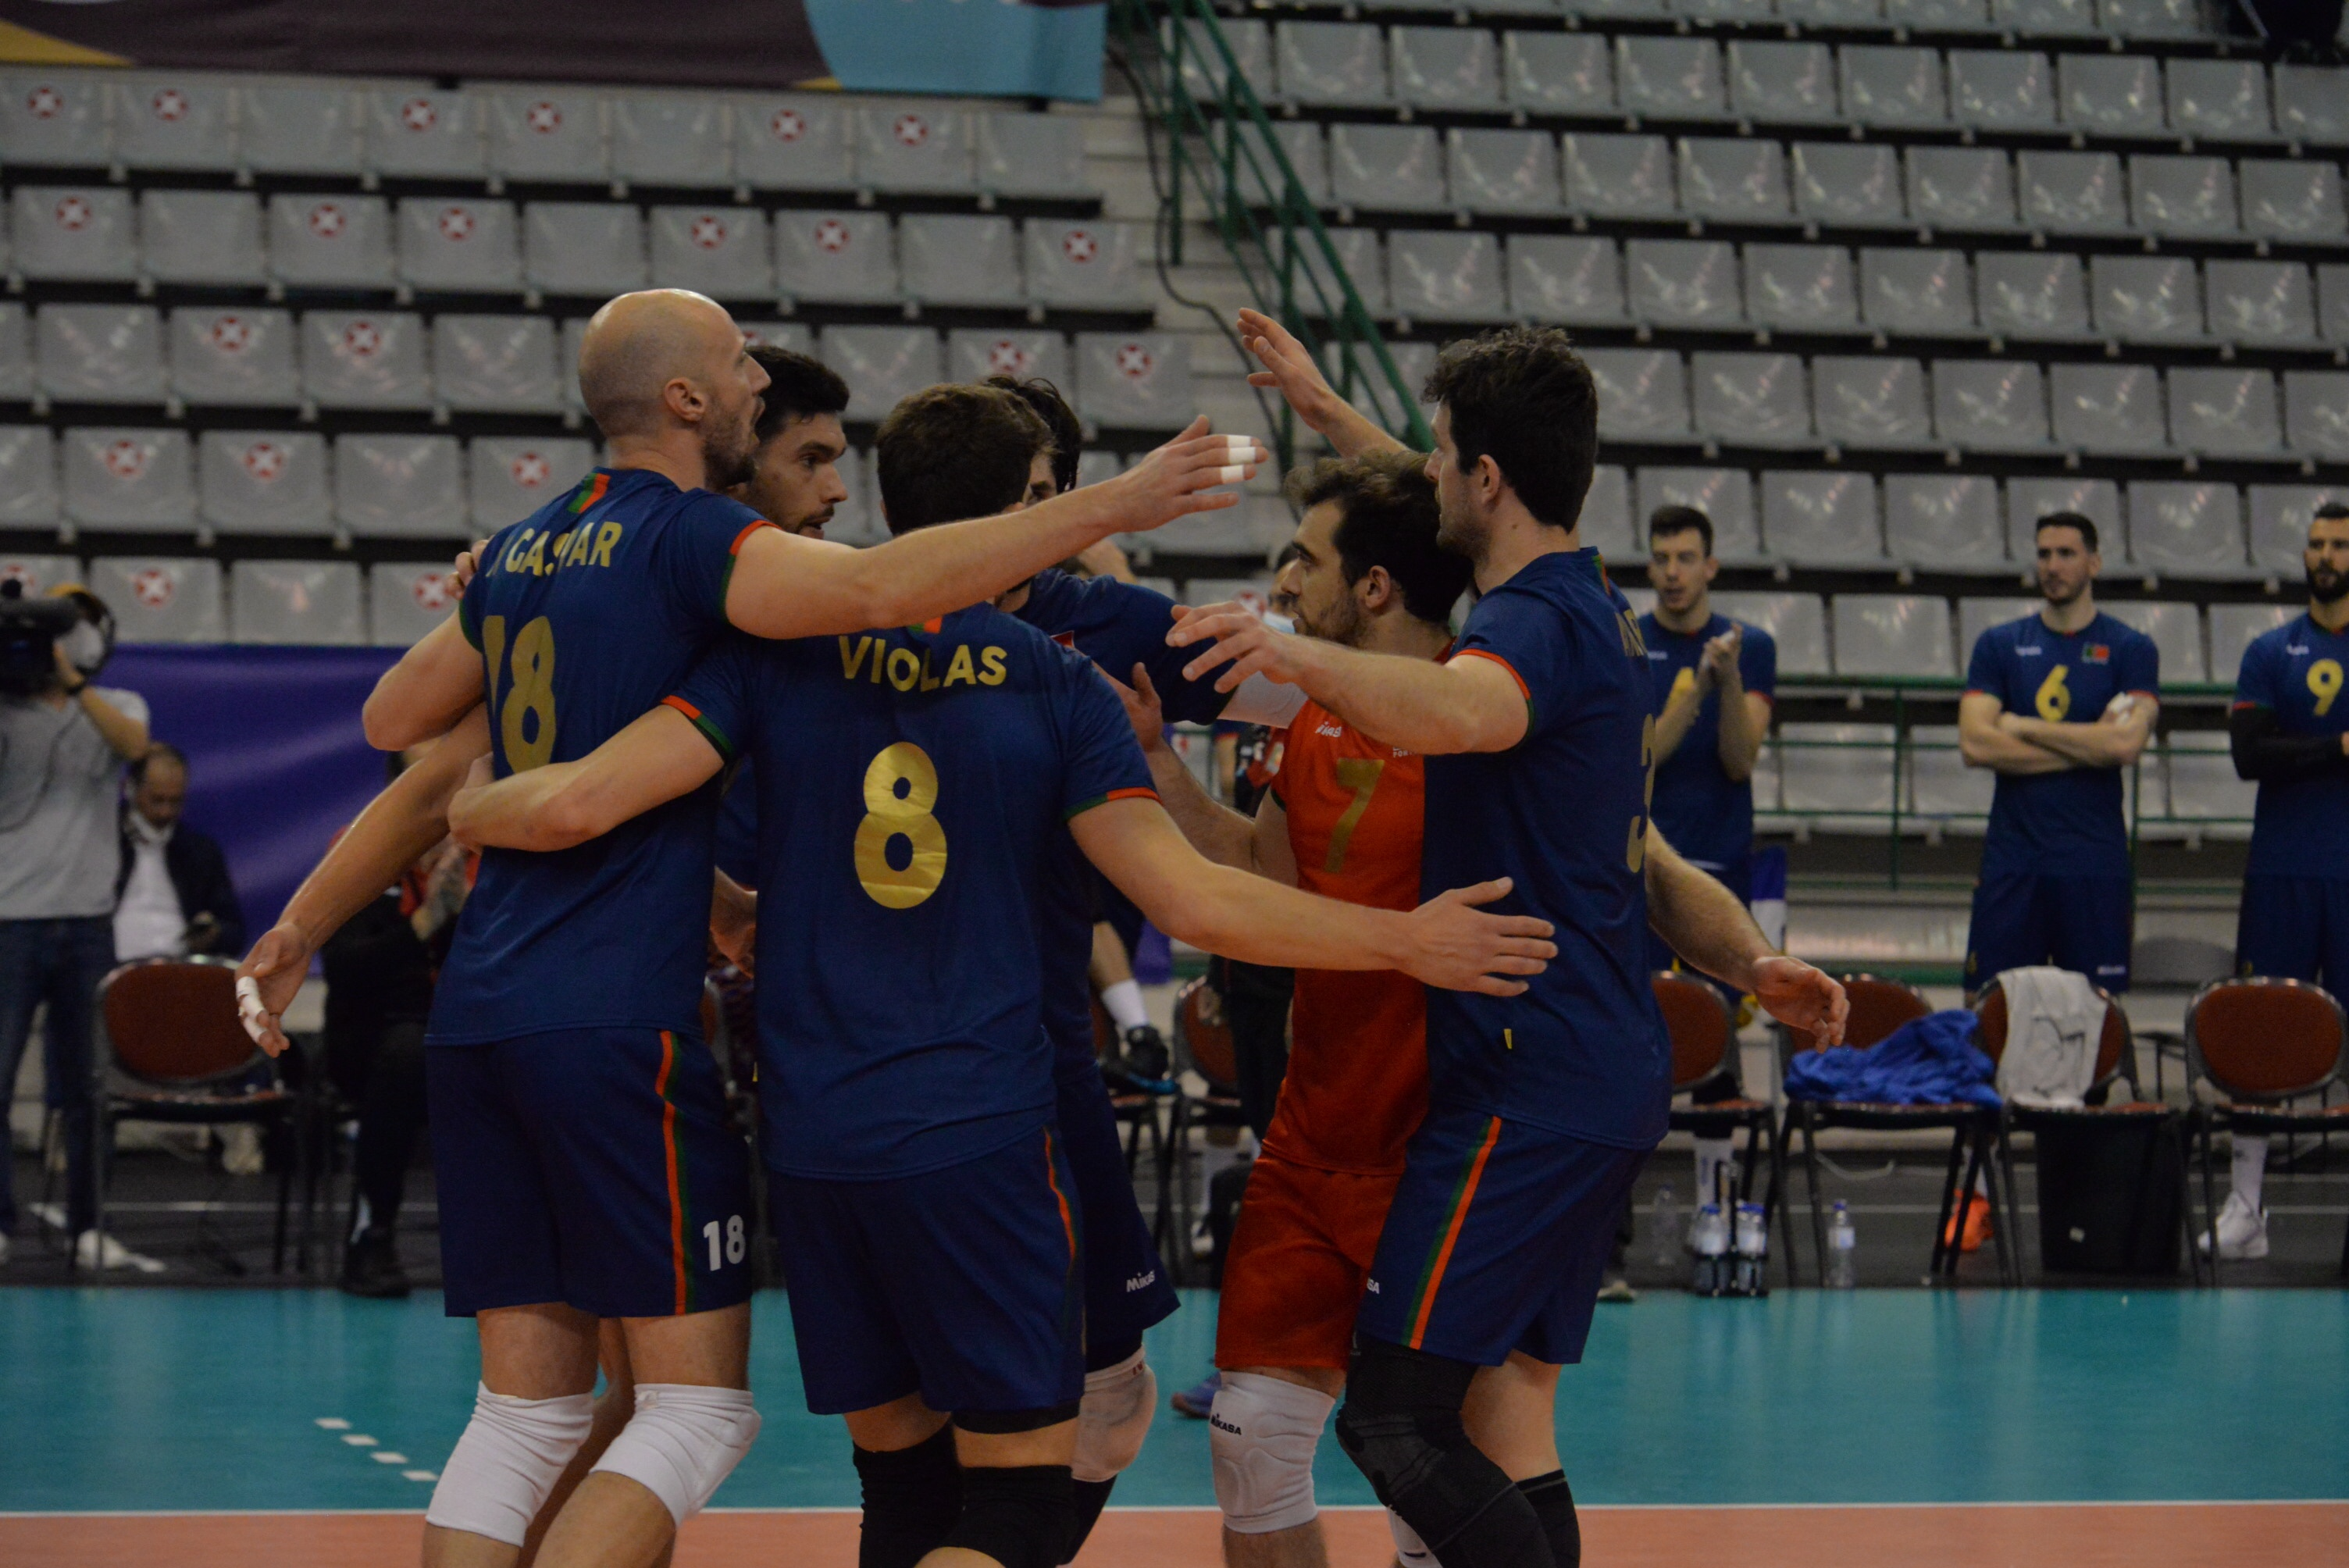 EuroVolley 2021 Qualifiers: All results of May 15 – The Netherlands, Slovakia, Greece, Portugal (and Spain) qualified